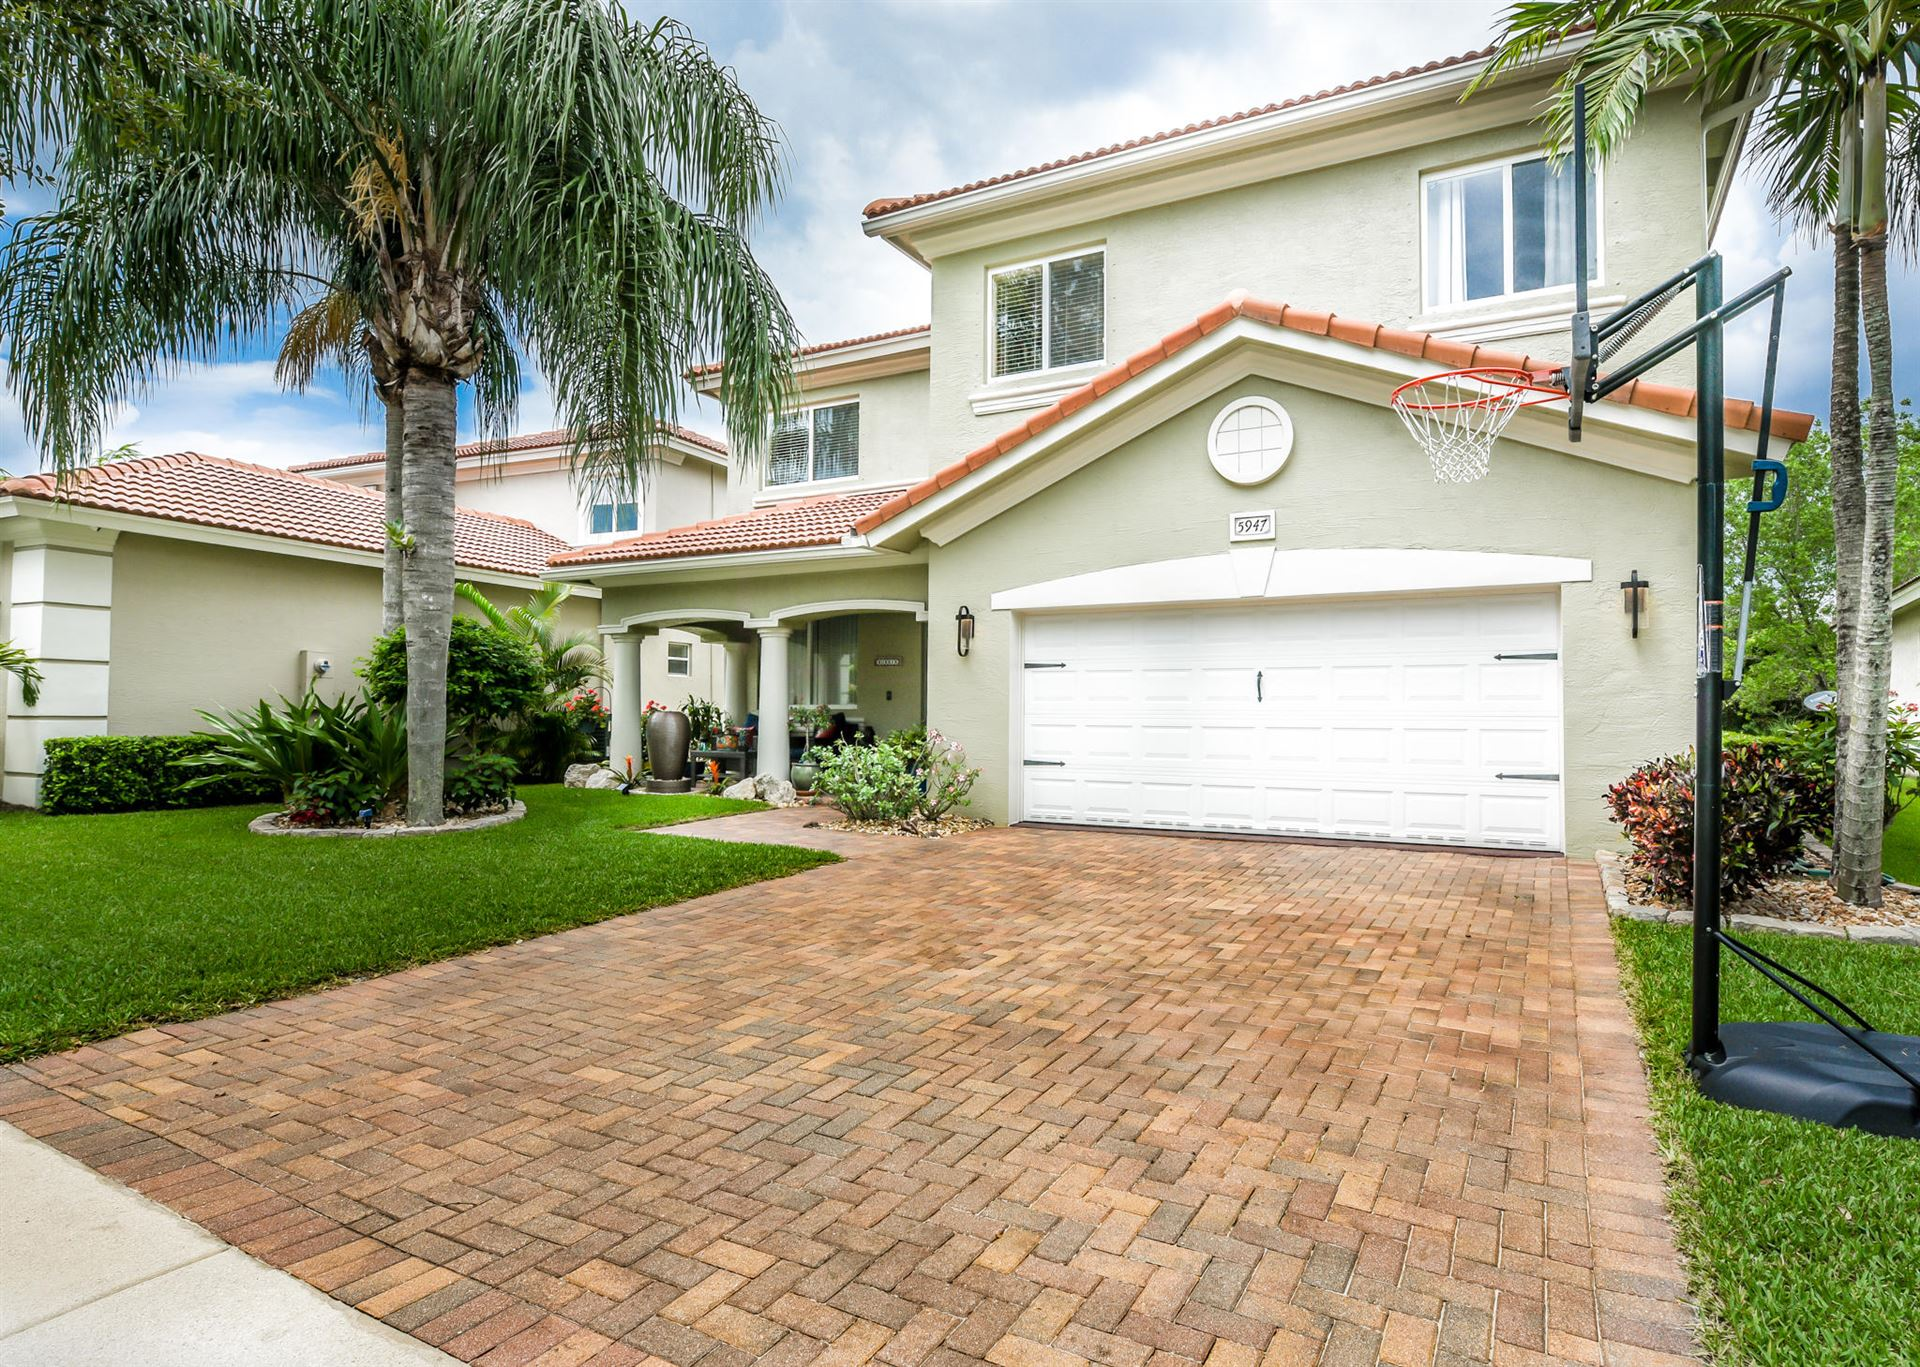 Photo of 5947 SW Bald Eagle Drive, Palm City, FL 34990 (MLS # RX-10623891)